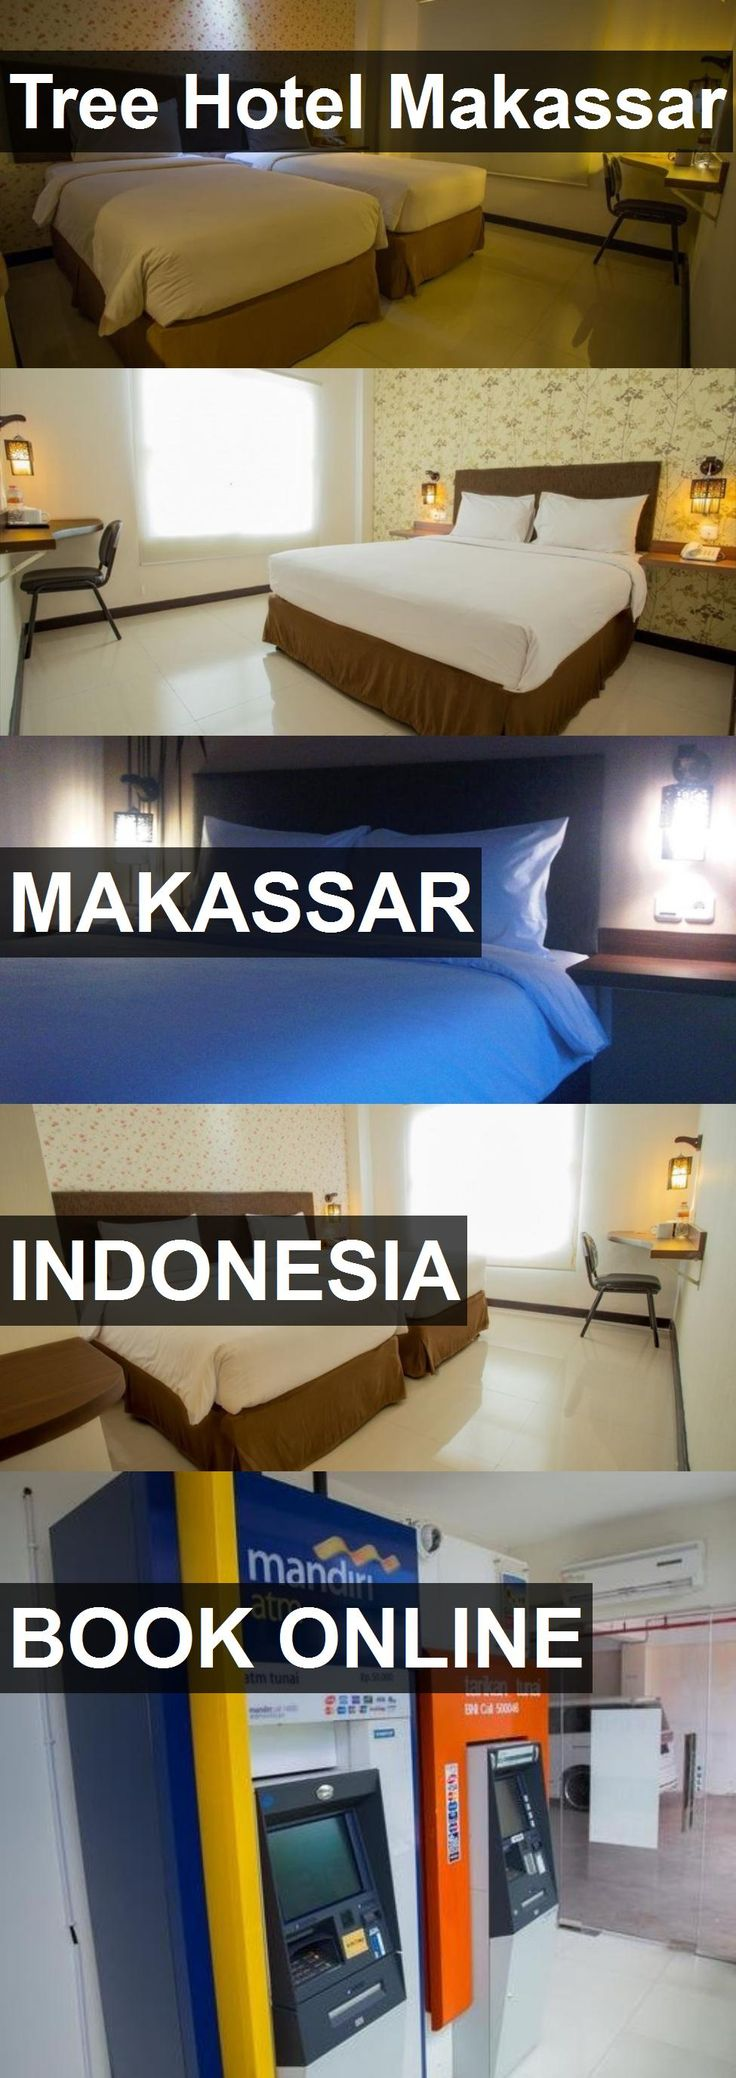 Tree Hotel Makassar in Makassar, Indonesia. For more information, photos, reviews and best prices please follow the link. #Indonesia #Makassar #travel #vacation #hotel